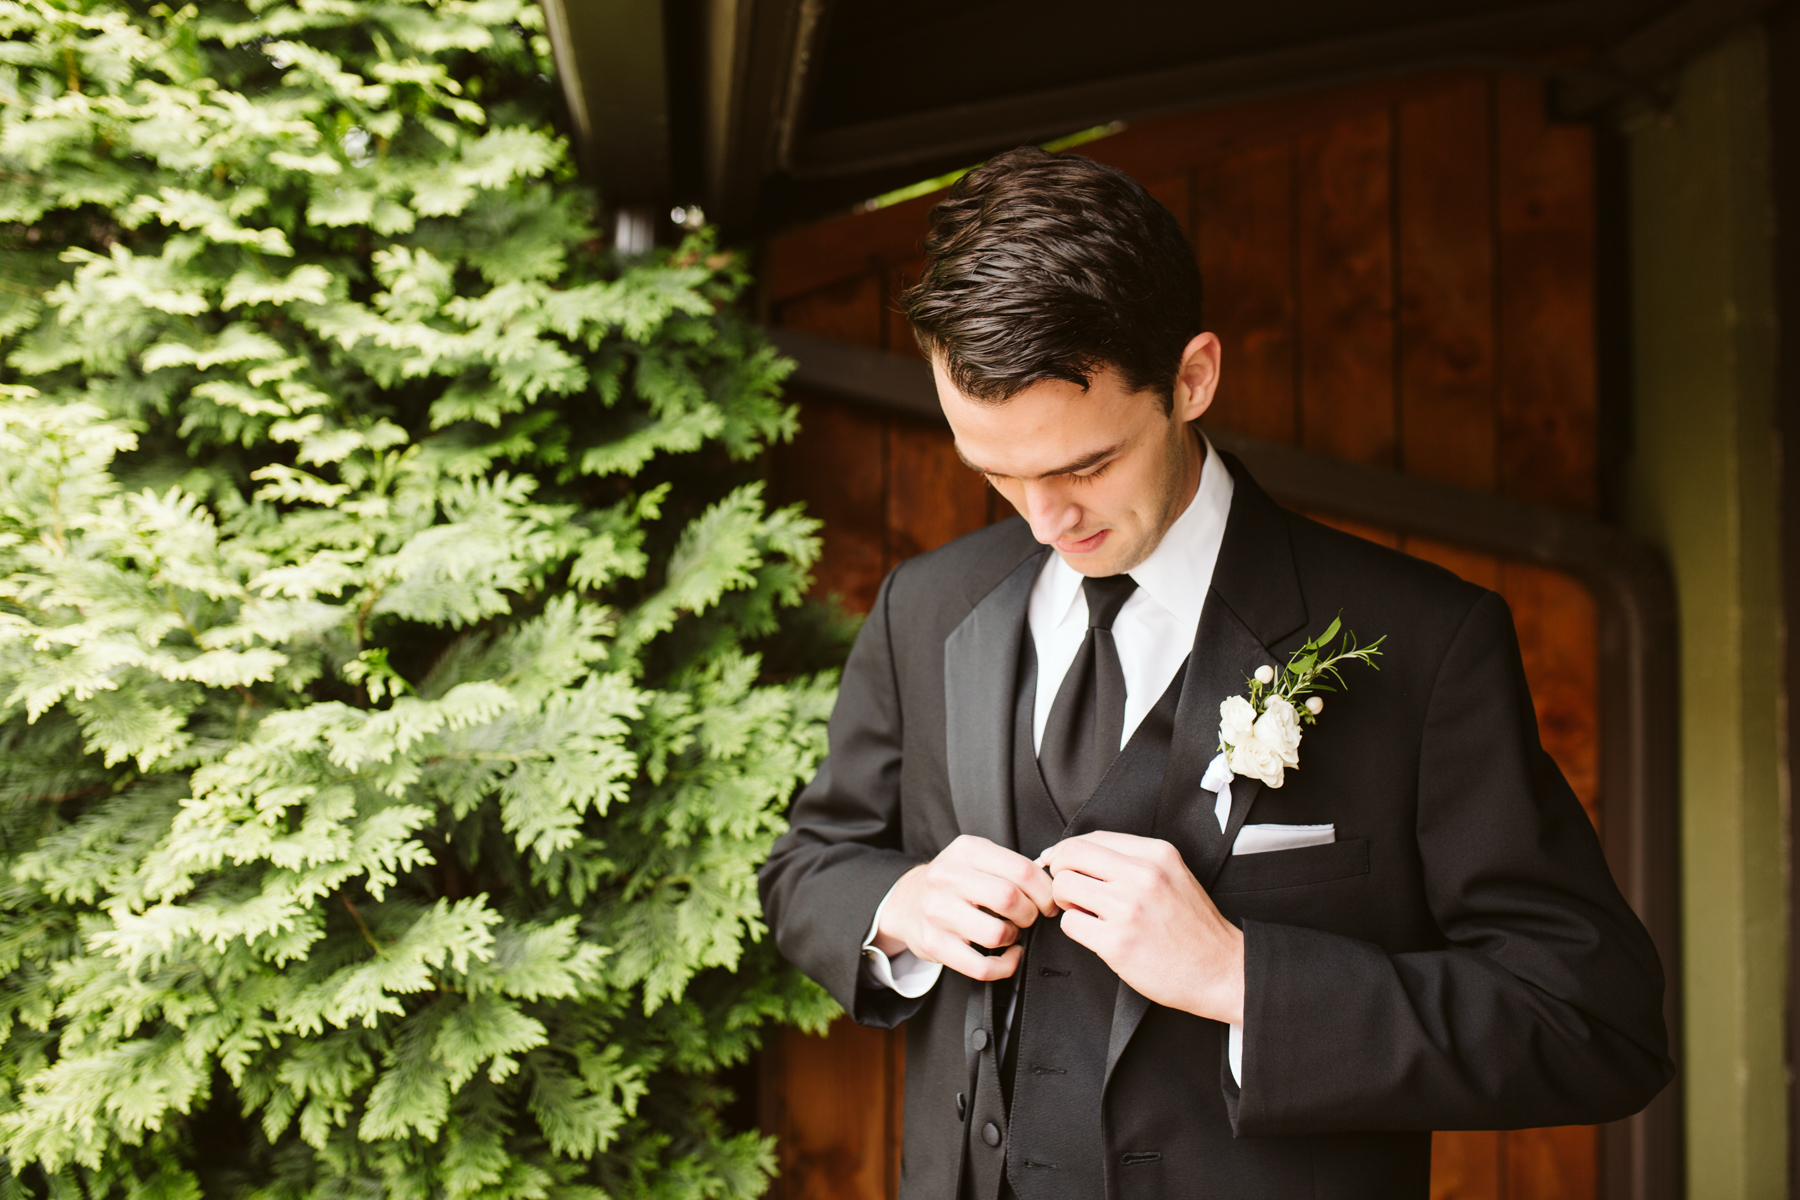 groom buttoning his jacket before a rainy summer wedding at brentwood hills church in Nashville, tennessee